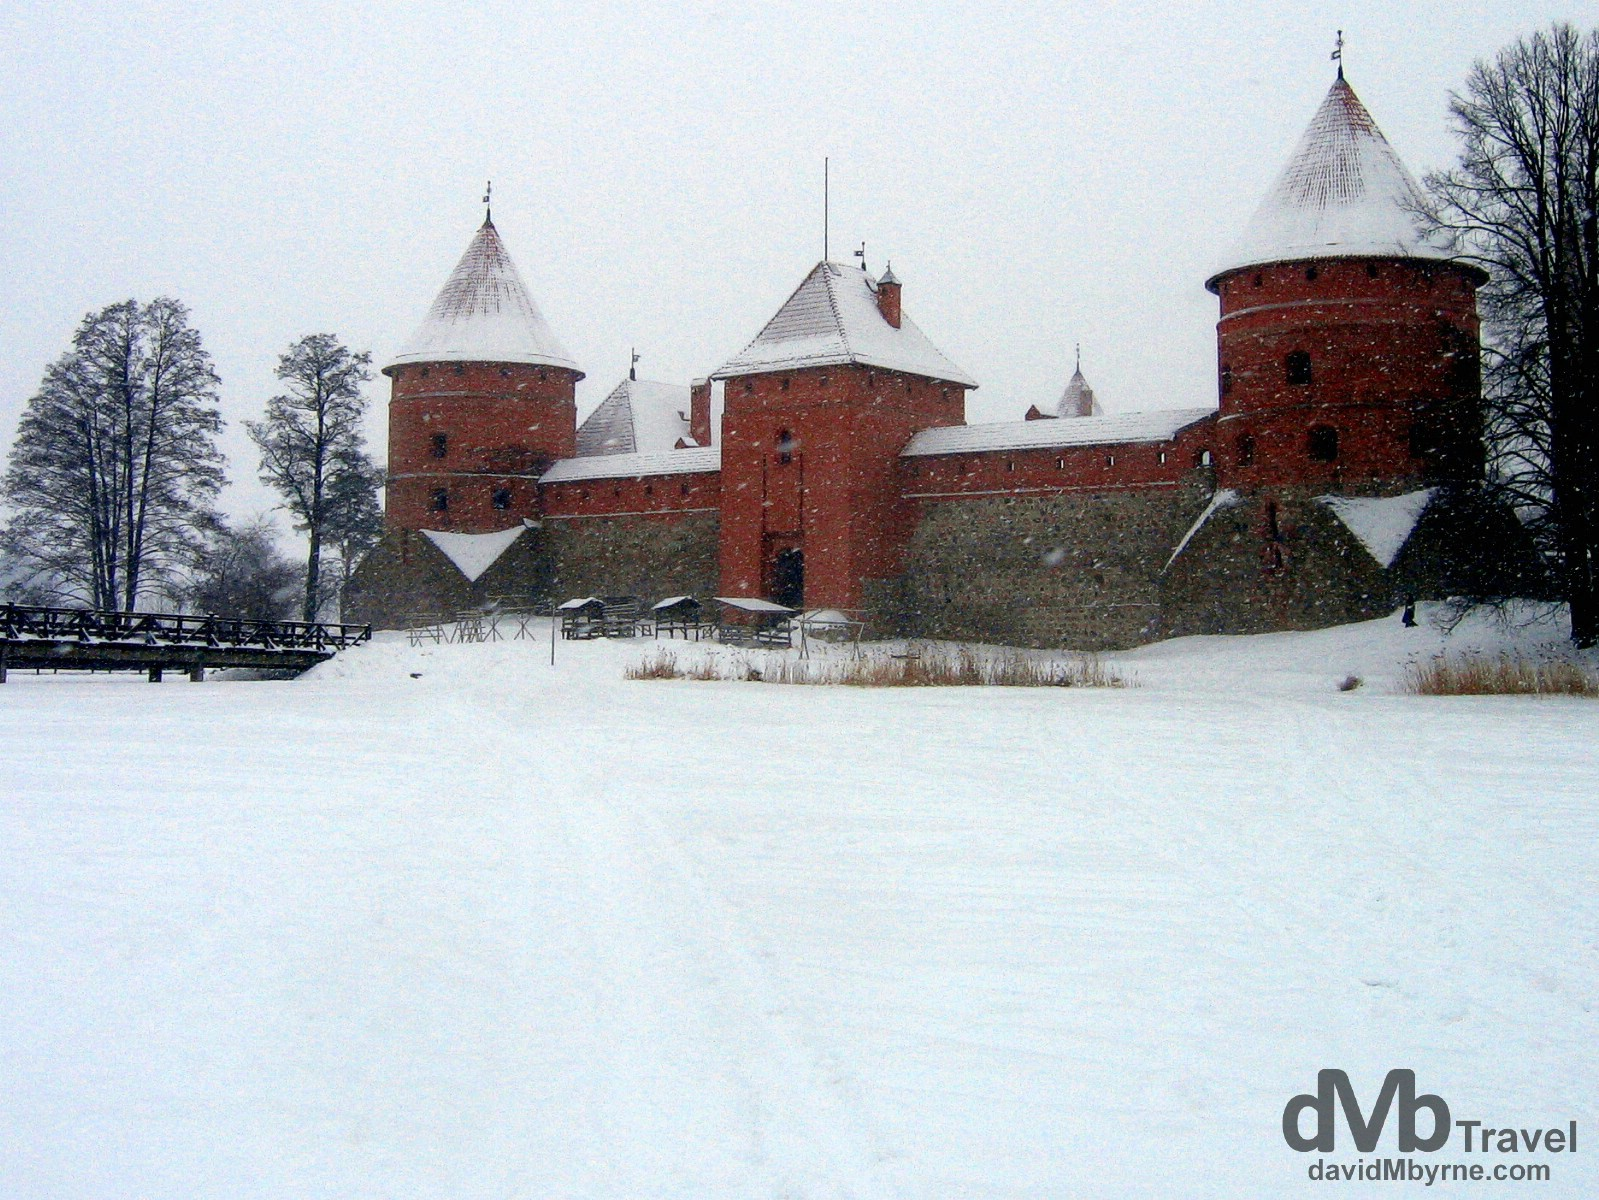 Trakai Castle as seen during a blizzard from the frozen surface of Lake Galv?. Trakai, Lithuania. March 4, 2006.